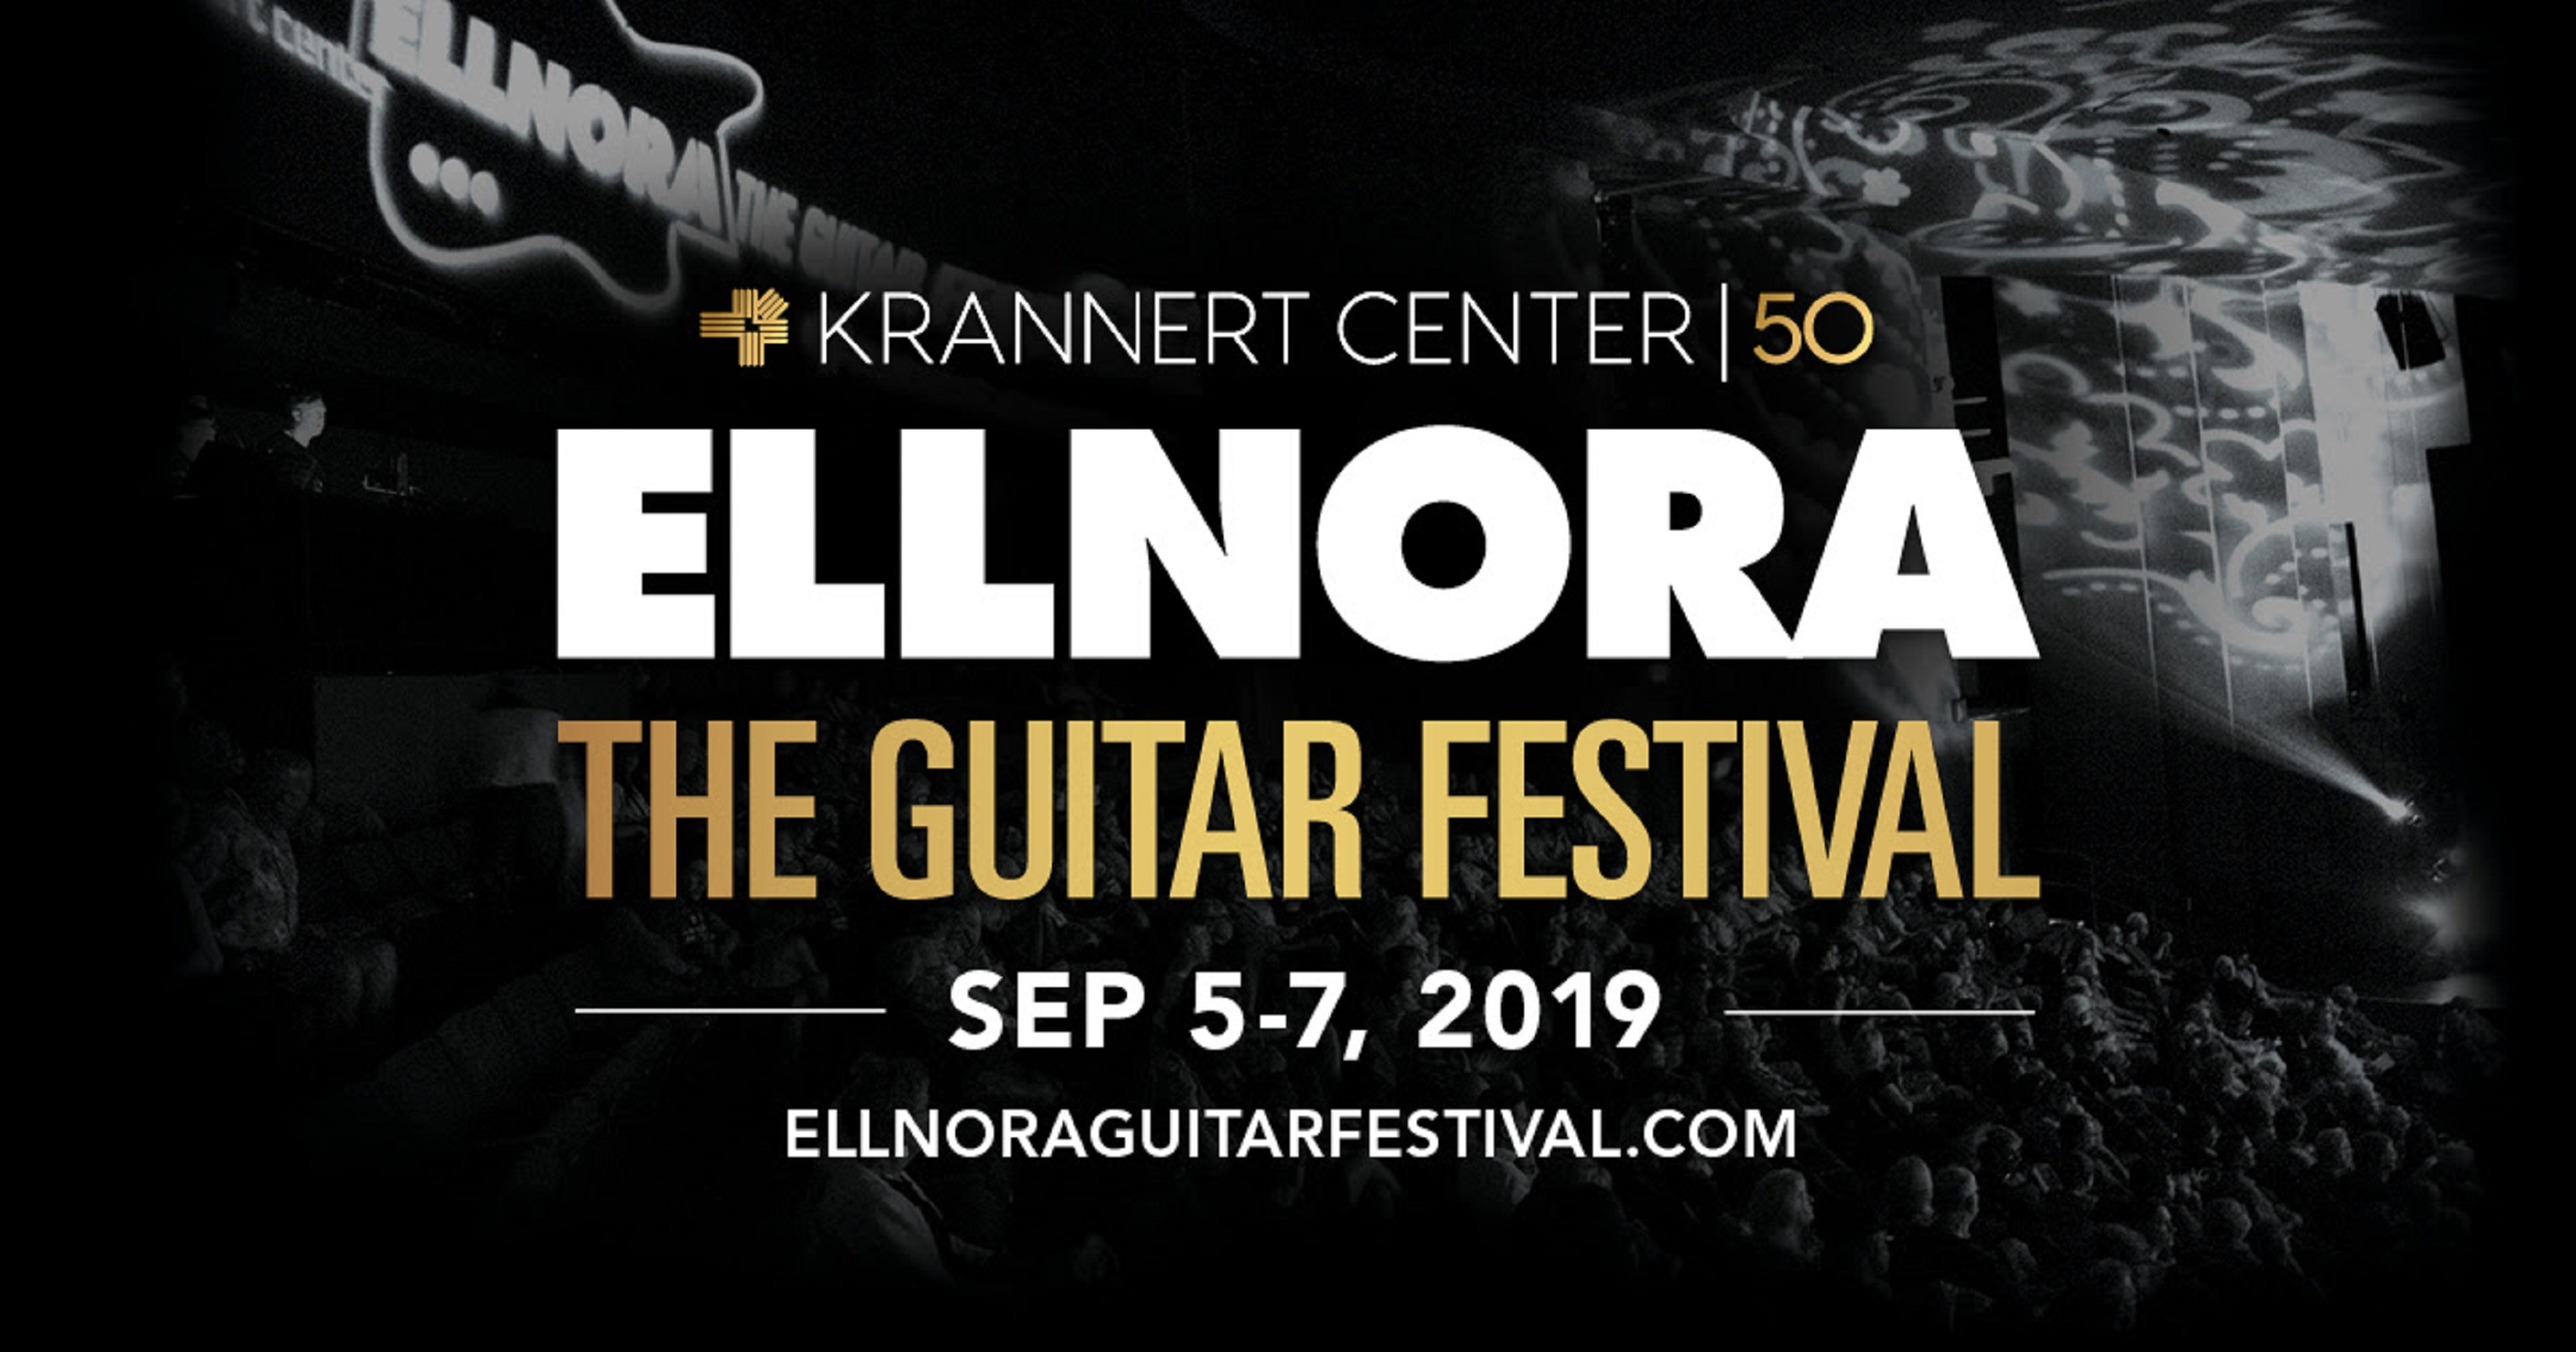 ELLNORA | The Guitar Festival Details Special Programming